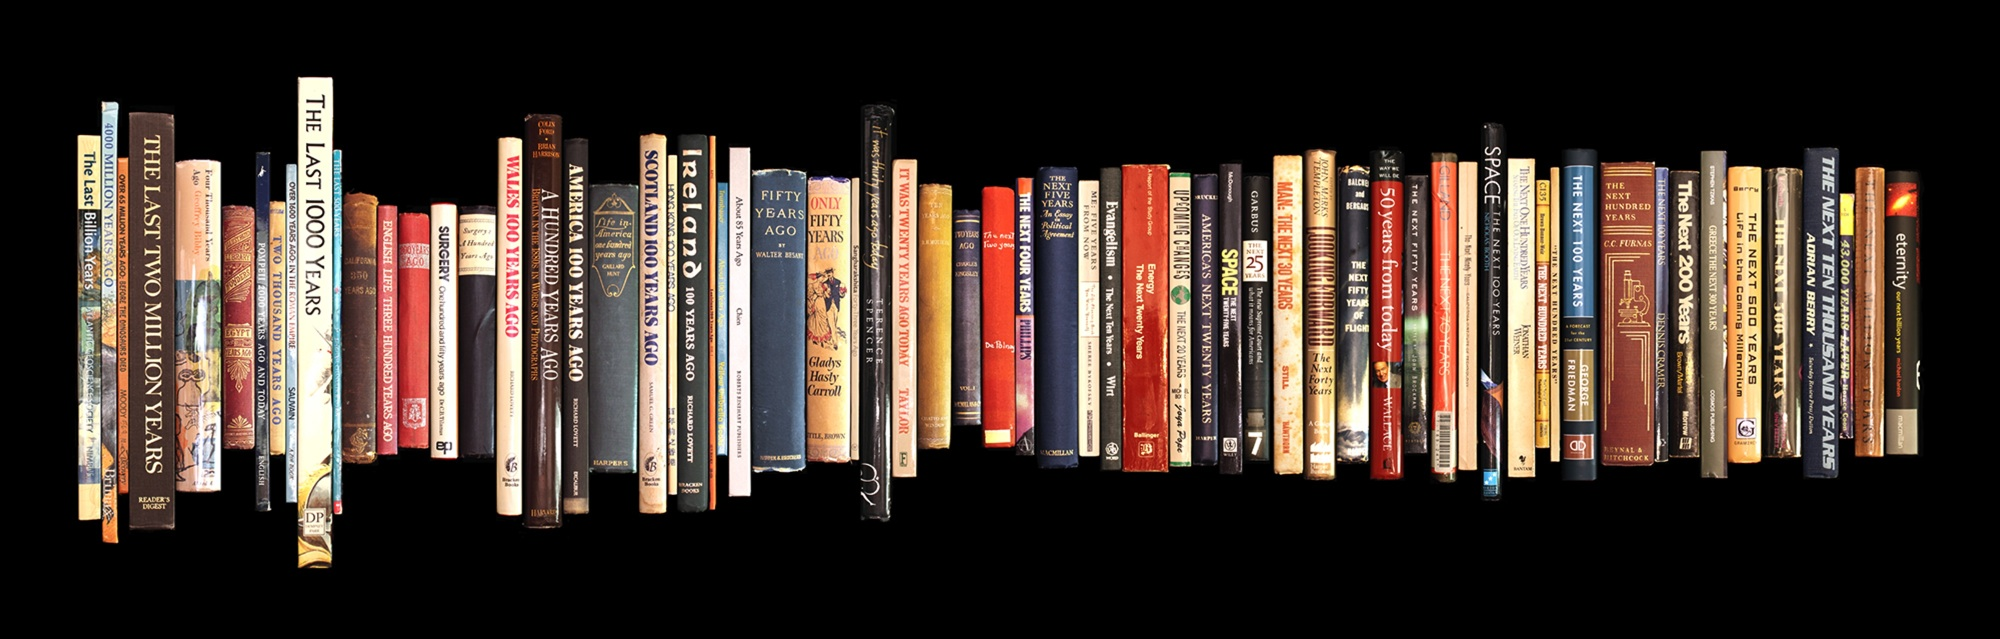 Image of books lined up.